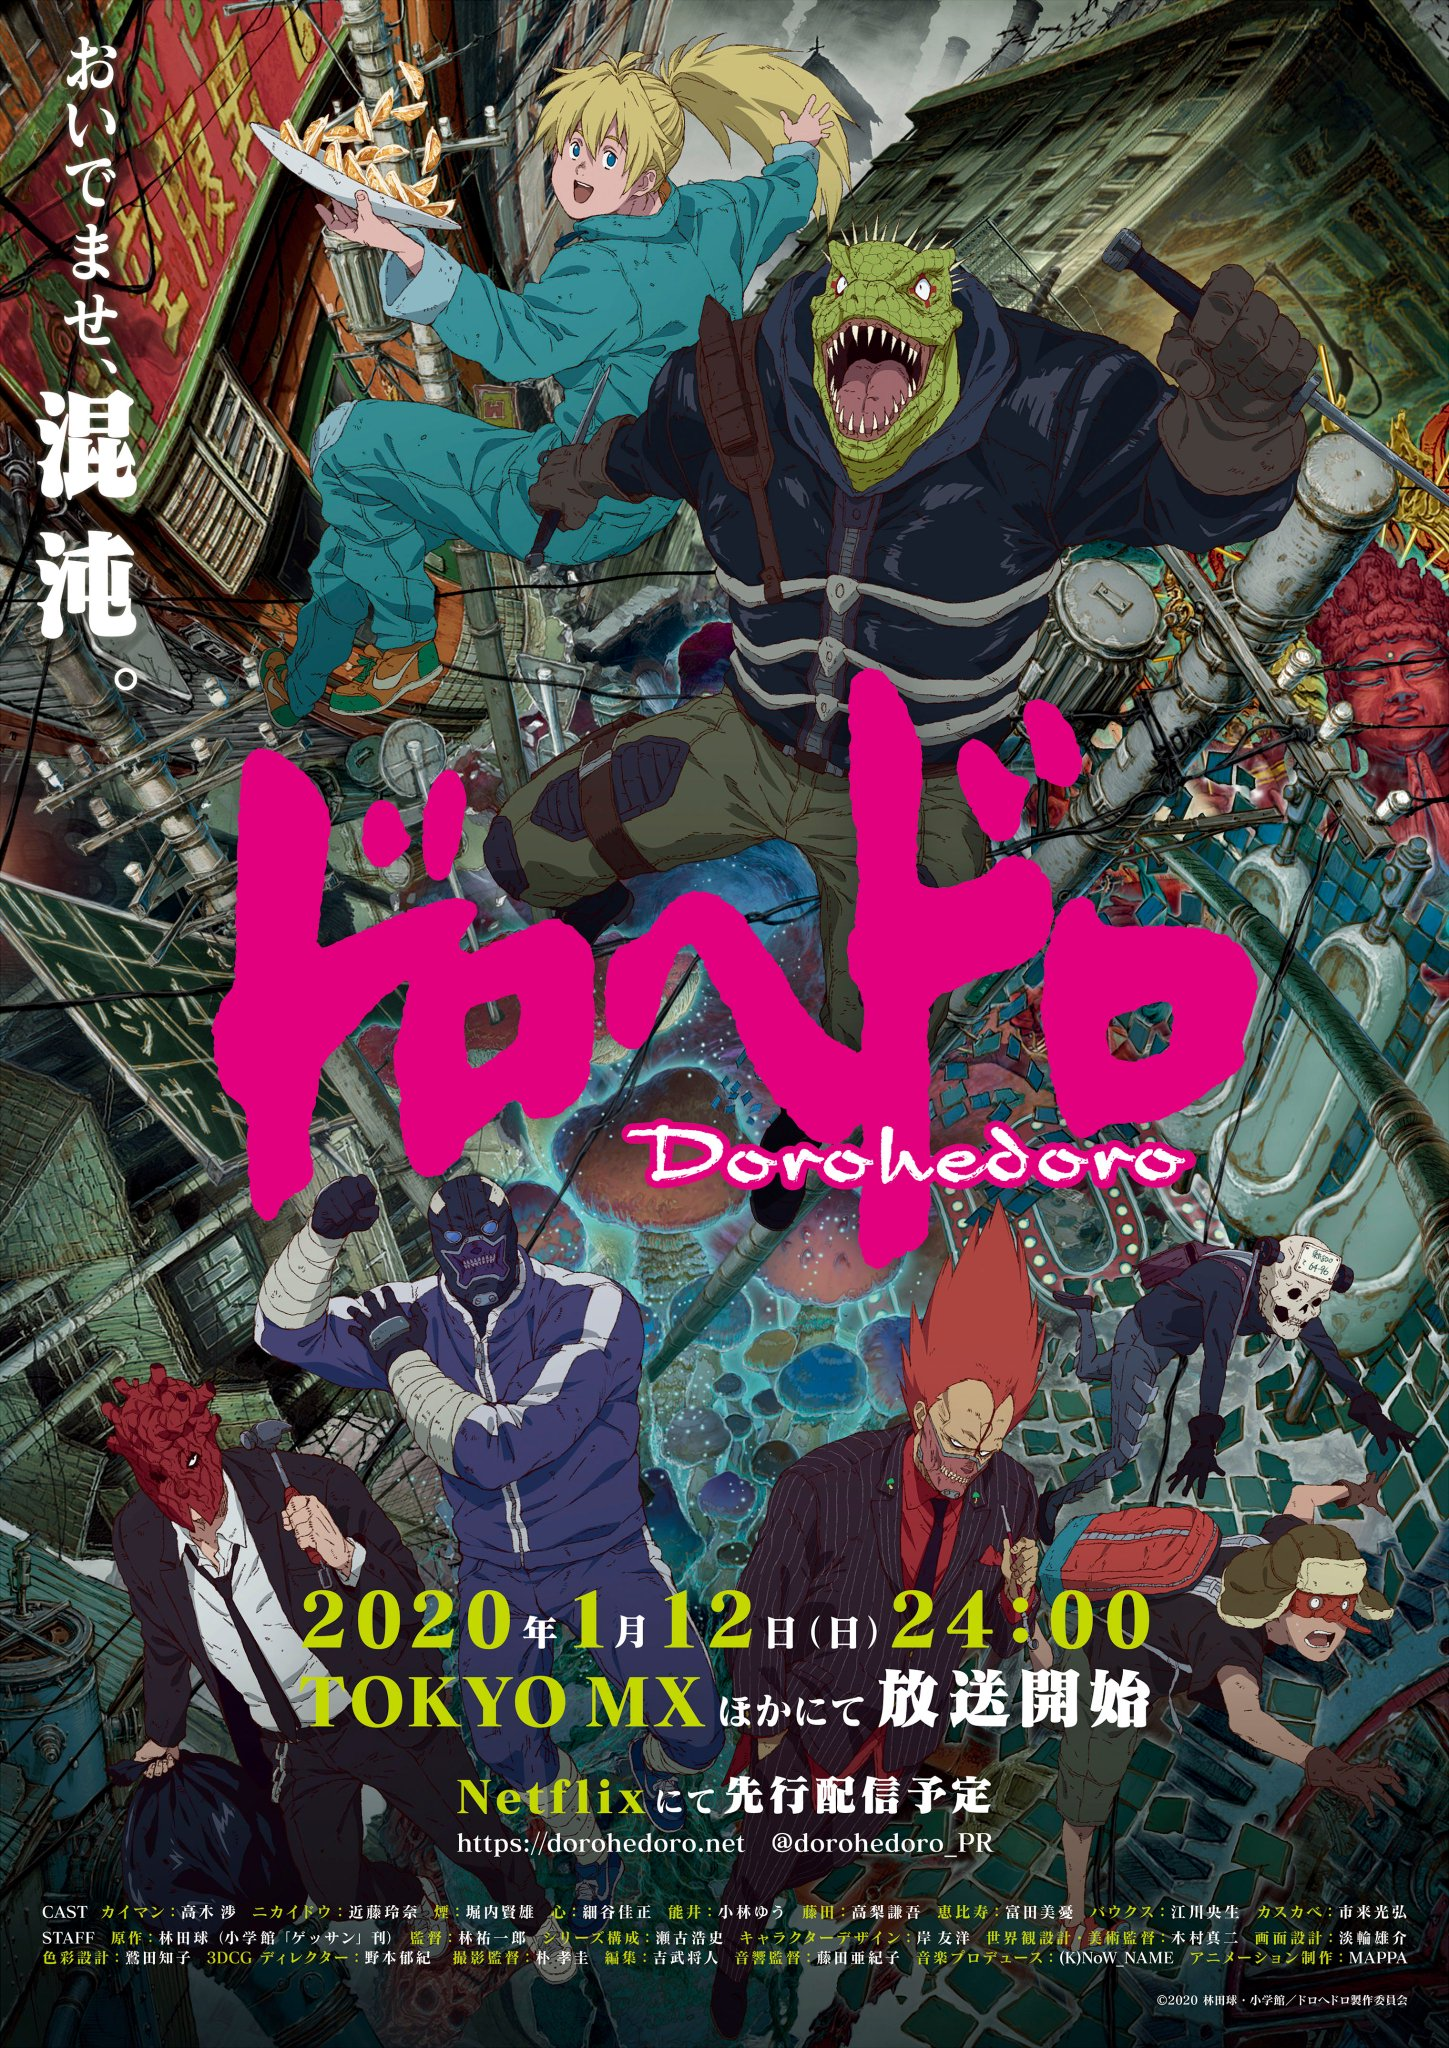 [Dorohedoro] Recomendação do Anima/Mangá Latest?cb=20191011182831